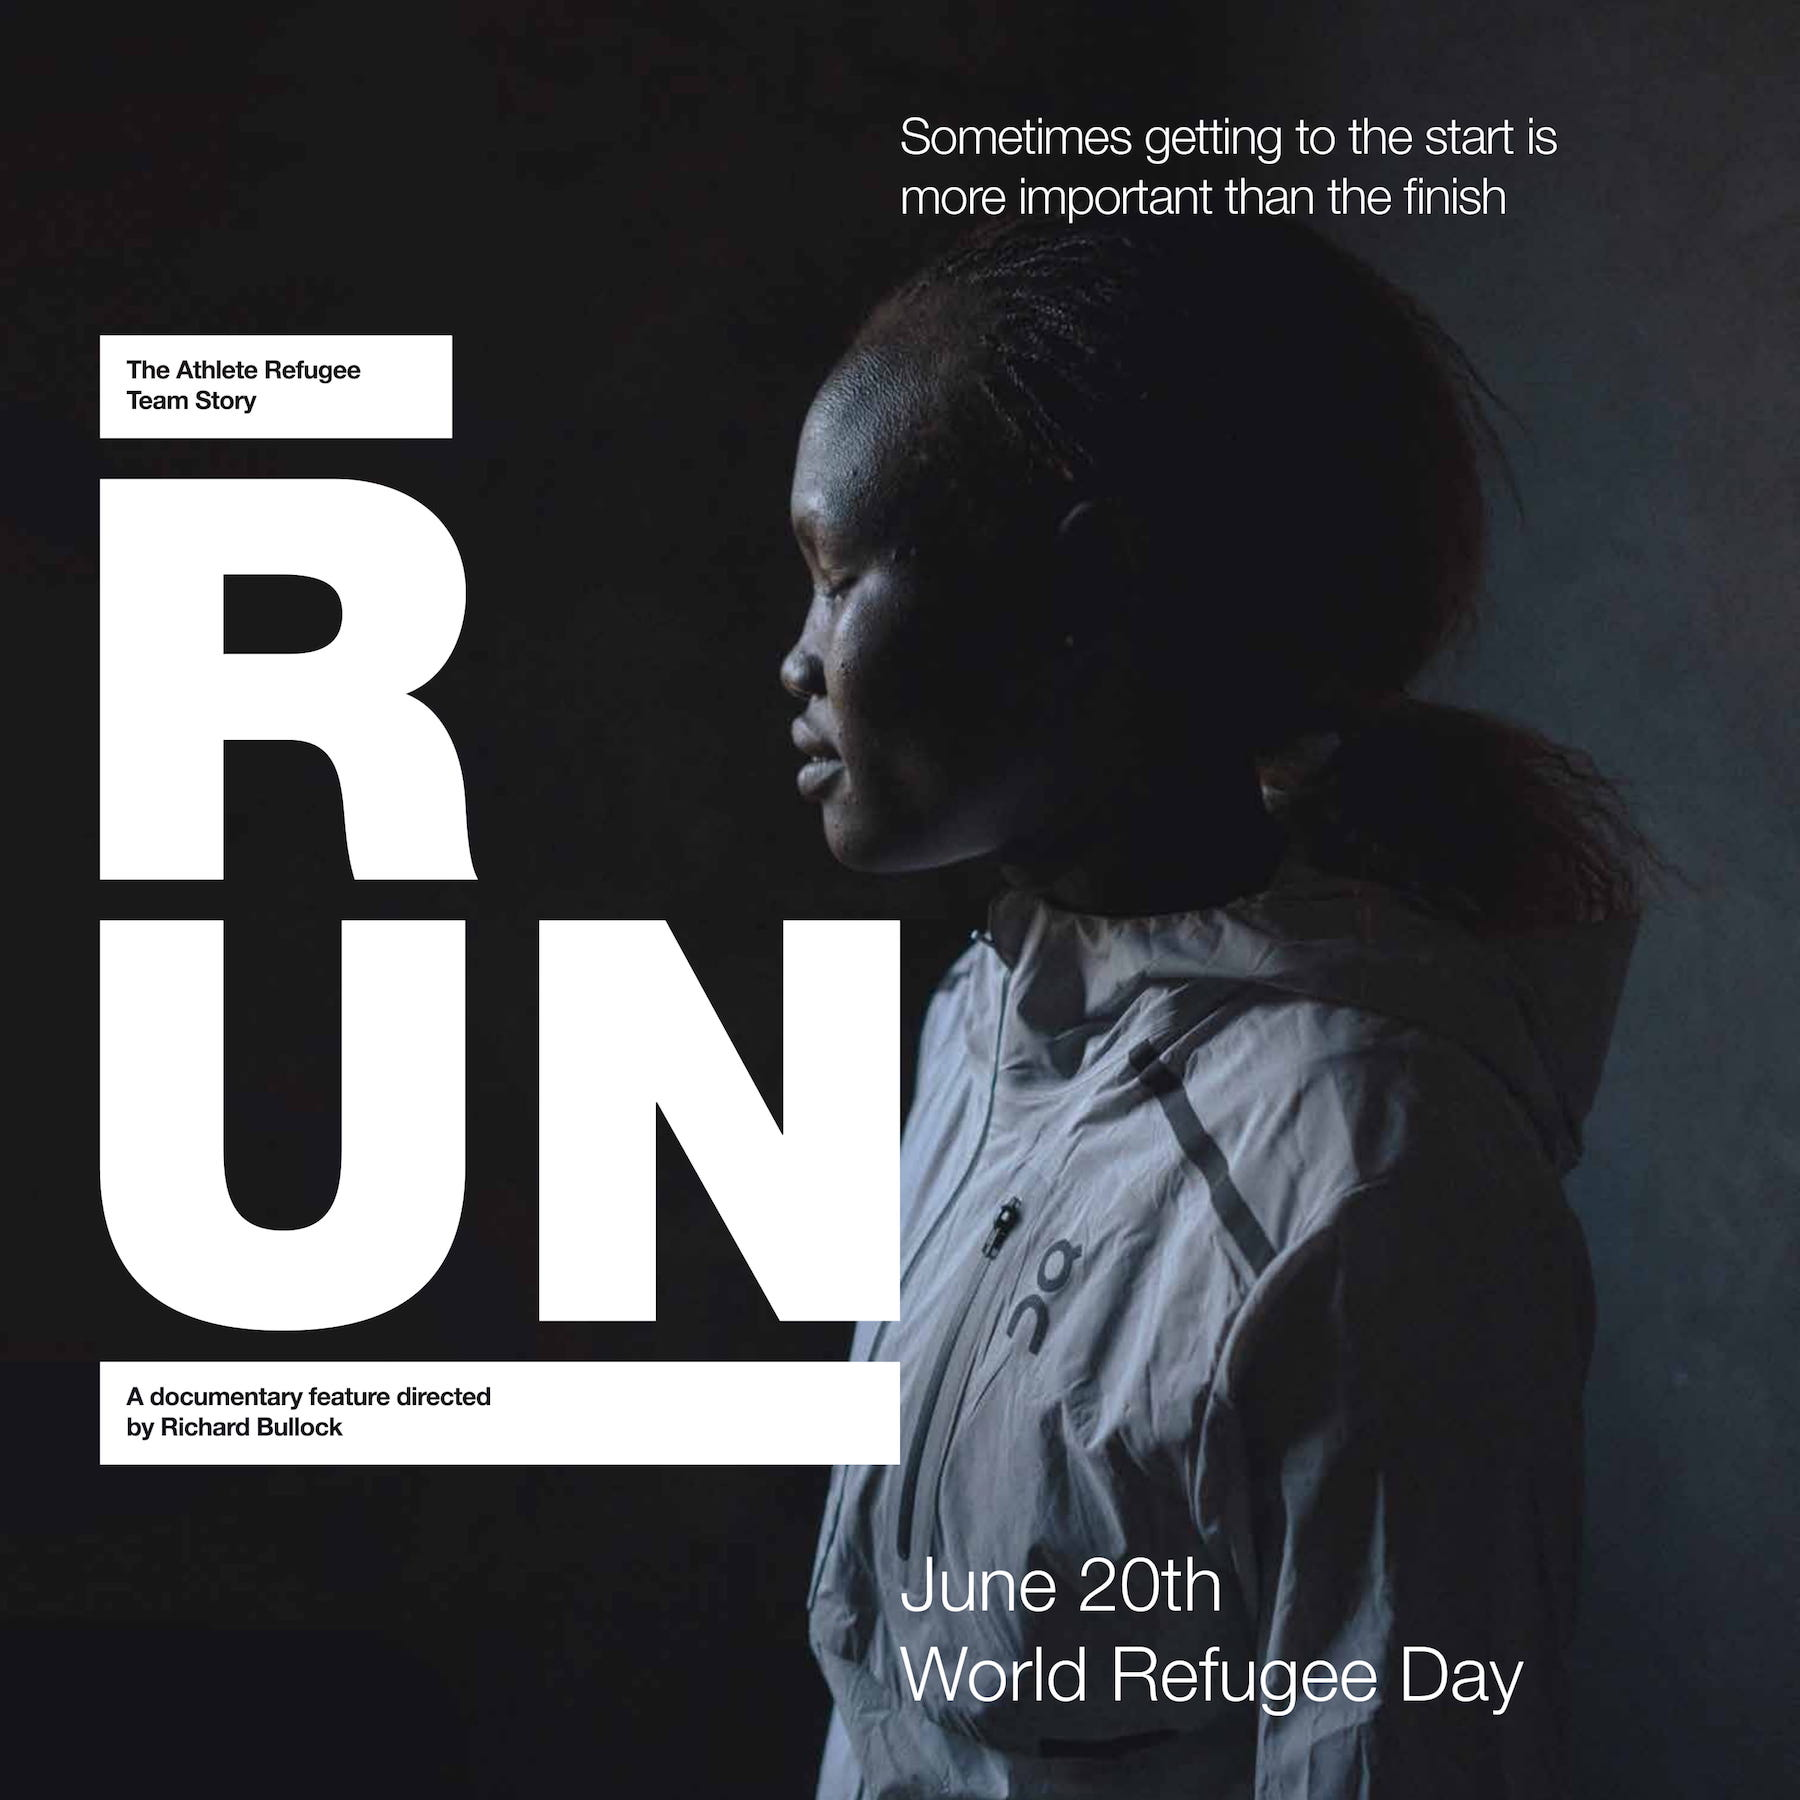 Seen+Noted: Richard Bullock directs new emotional documentary on the Athlete Refugee Team for World Refugee Day